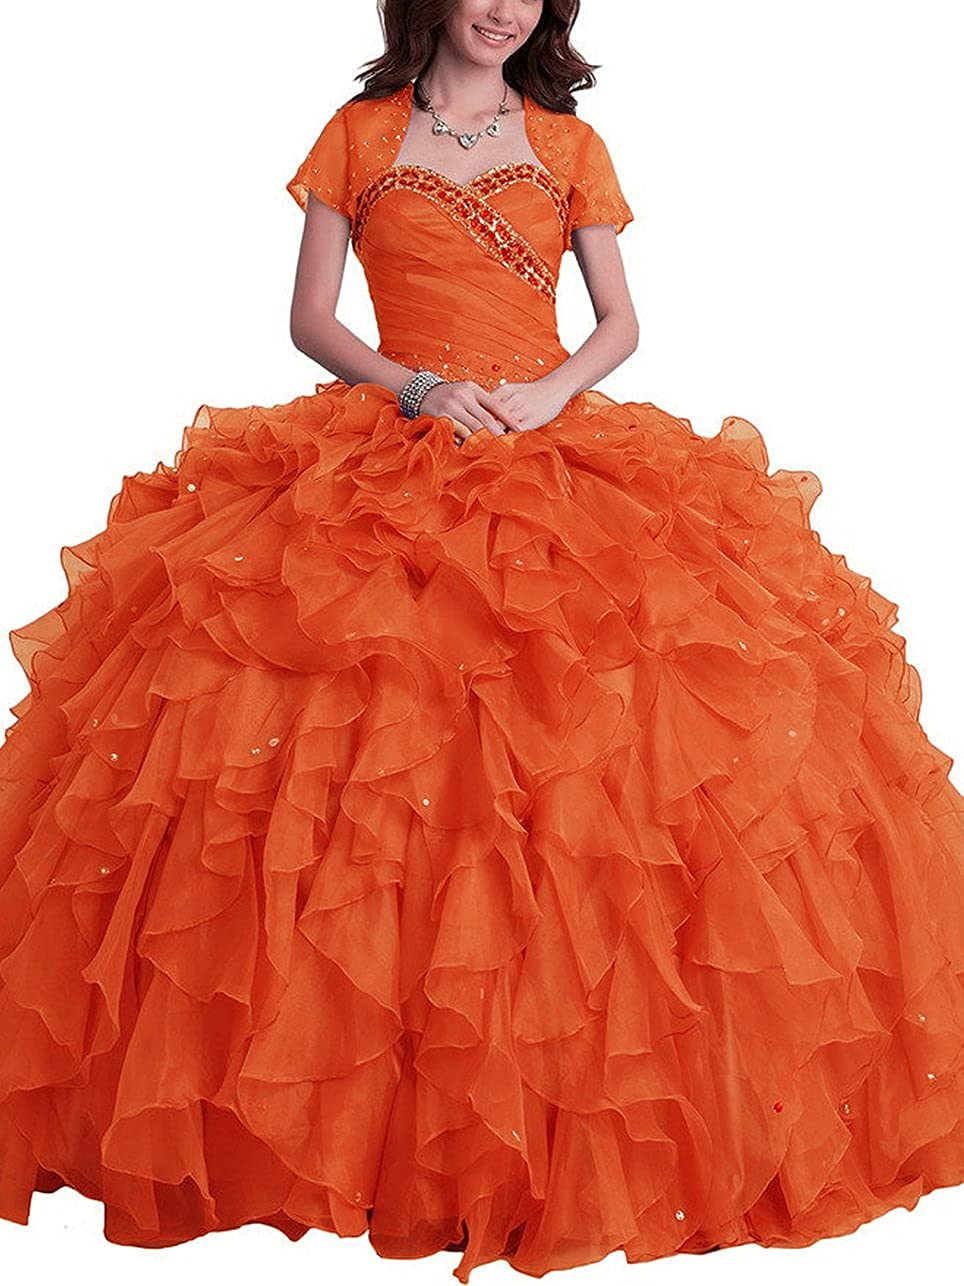 orange SDRESS Women's Rhinestones Sweetheart Ball Gown Tulle Quinceanera Dress with Wrap